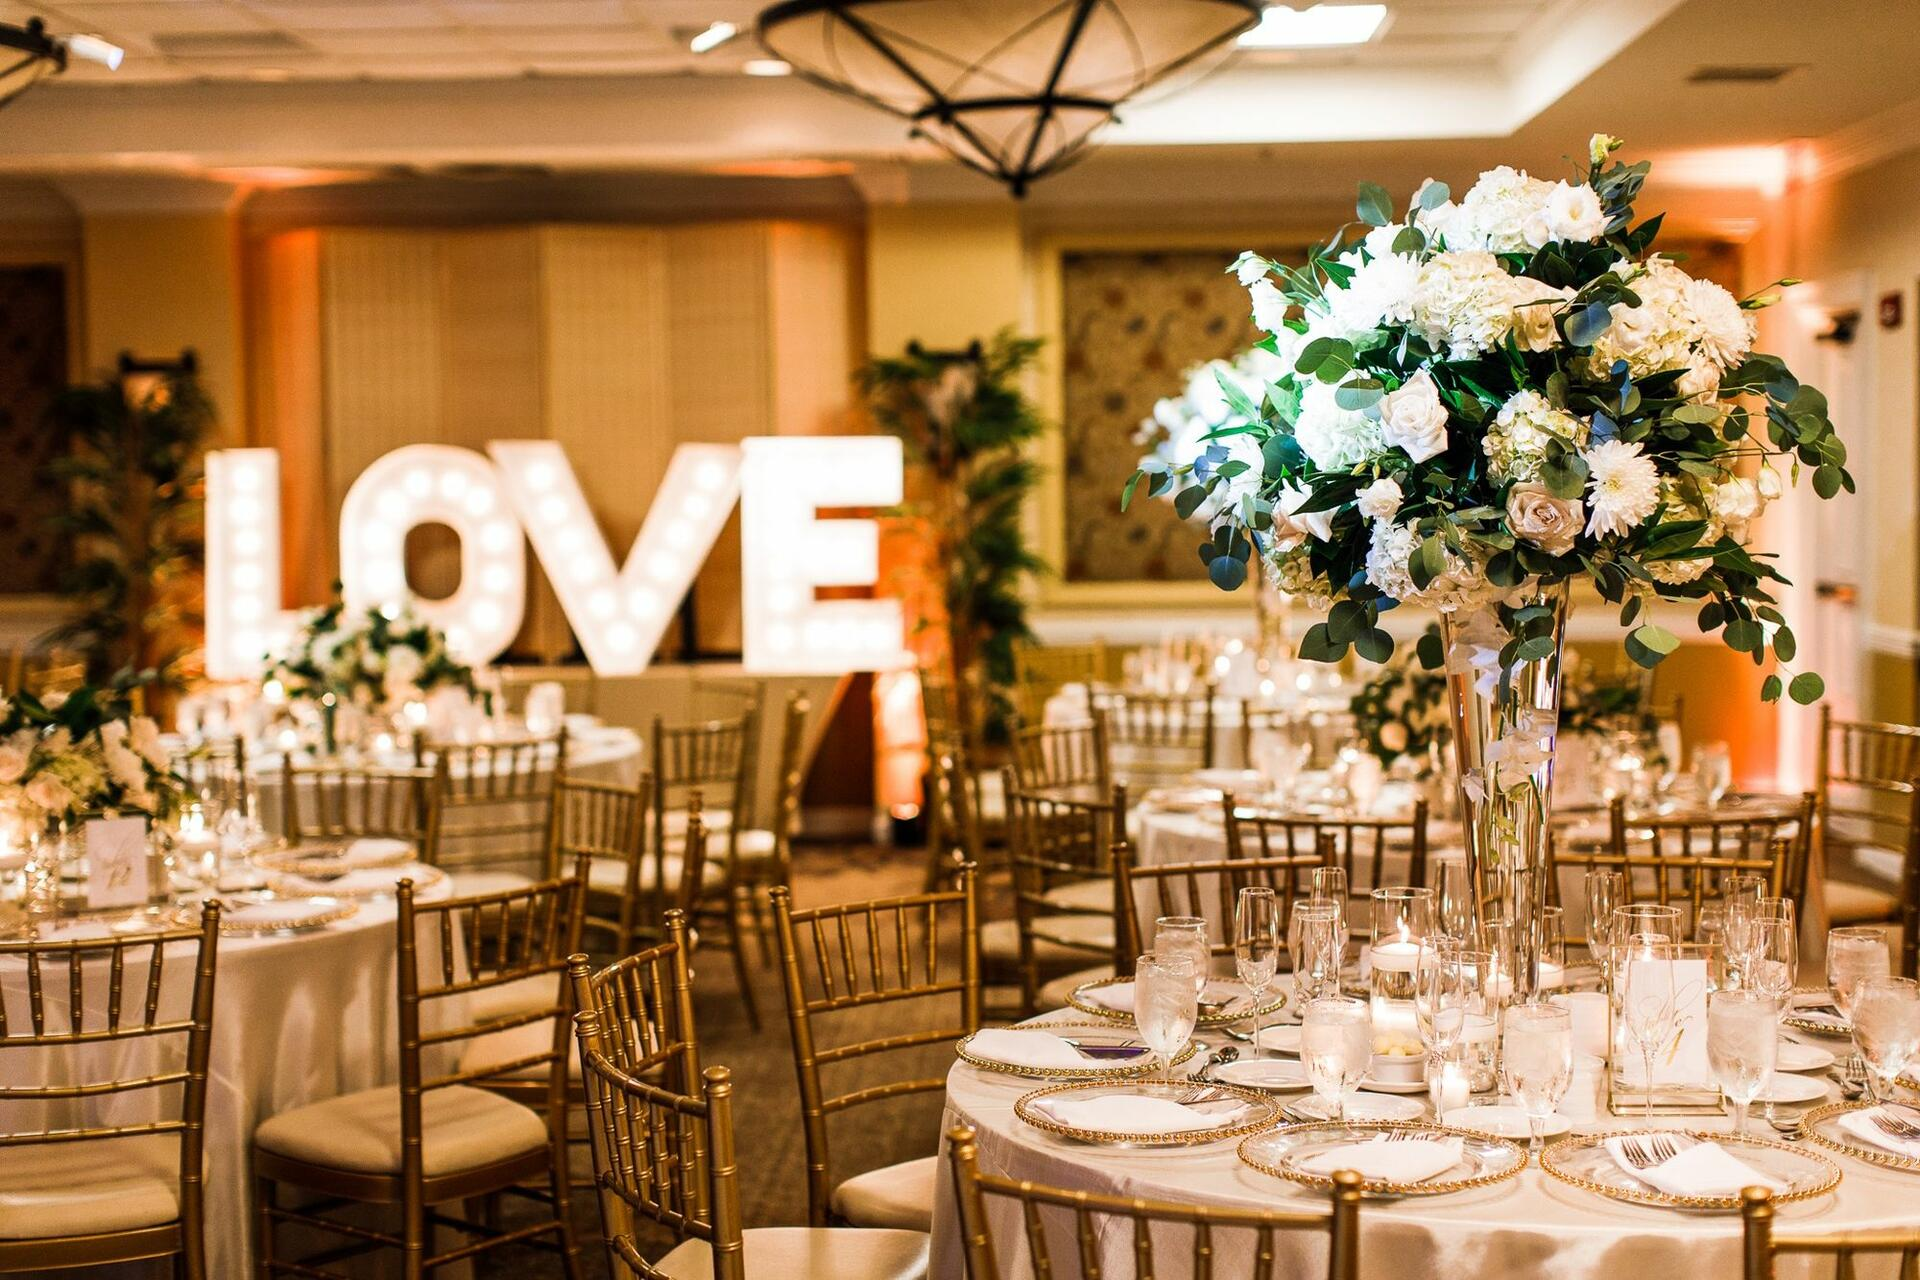 wedding decorations with flowers and sign that says l-o-v-e